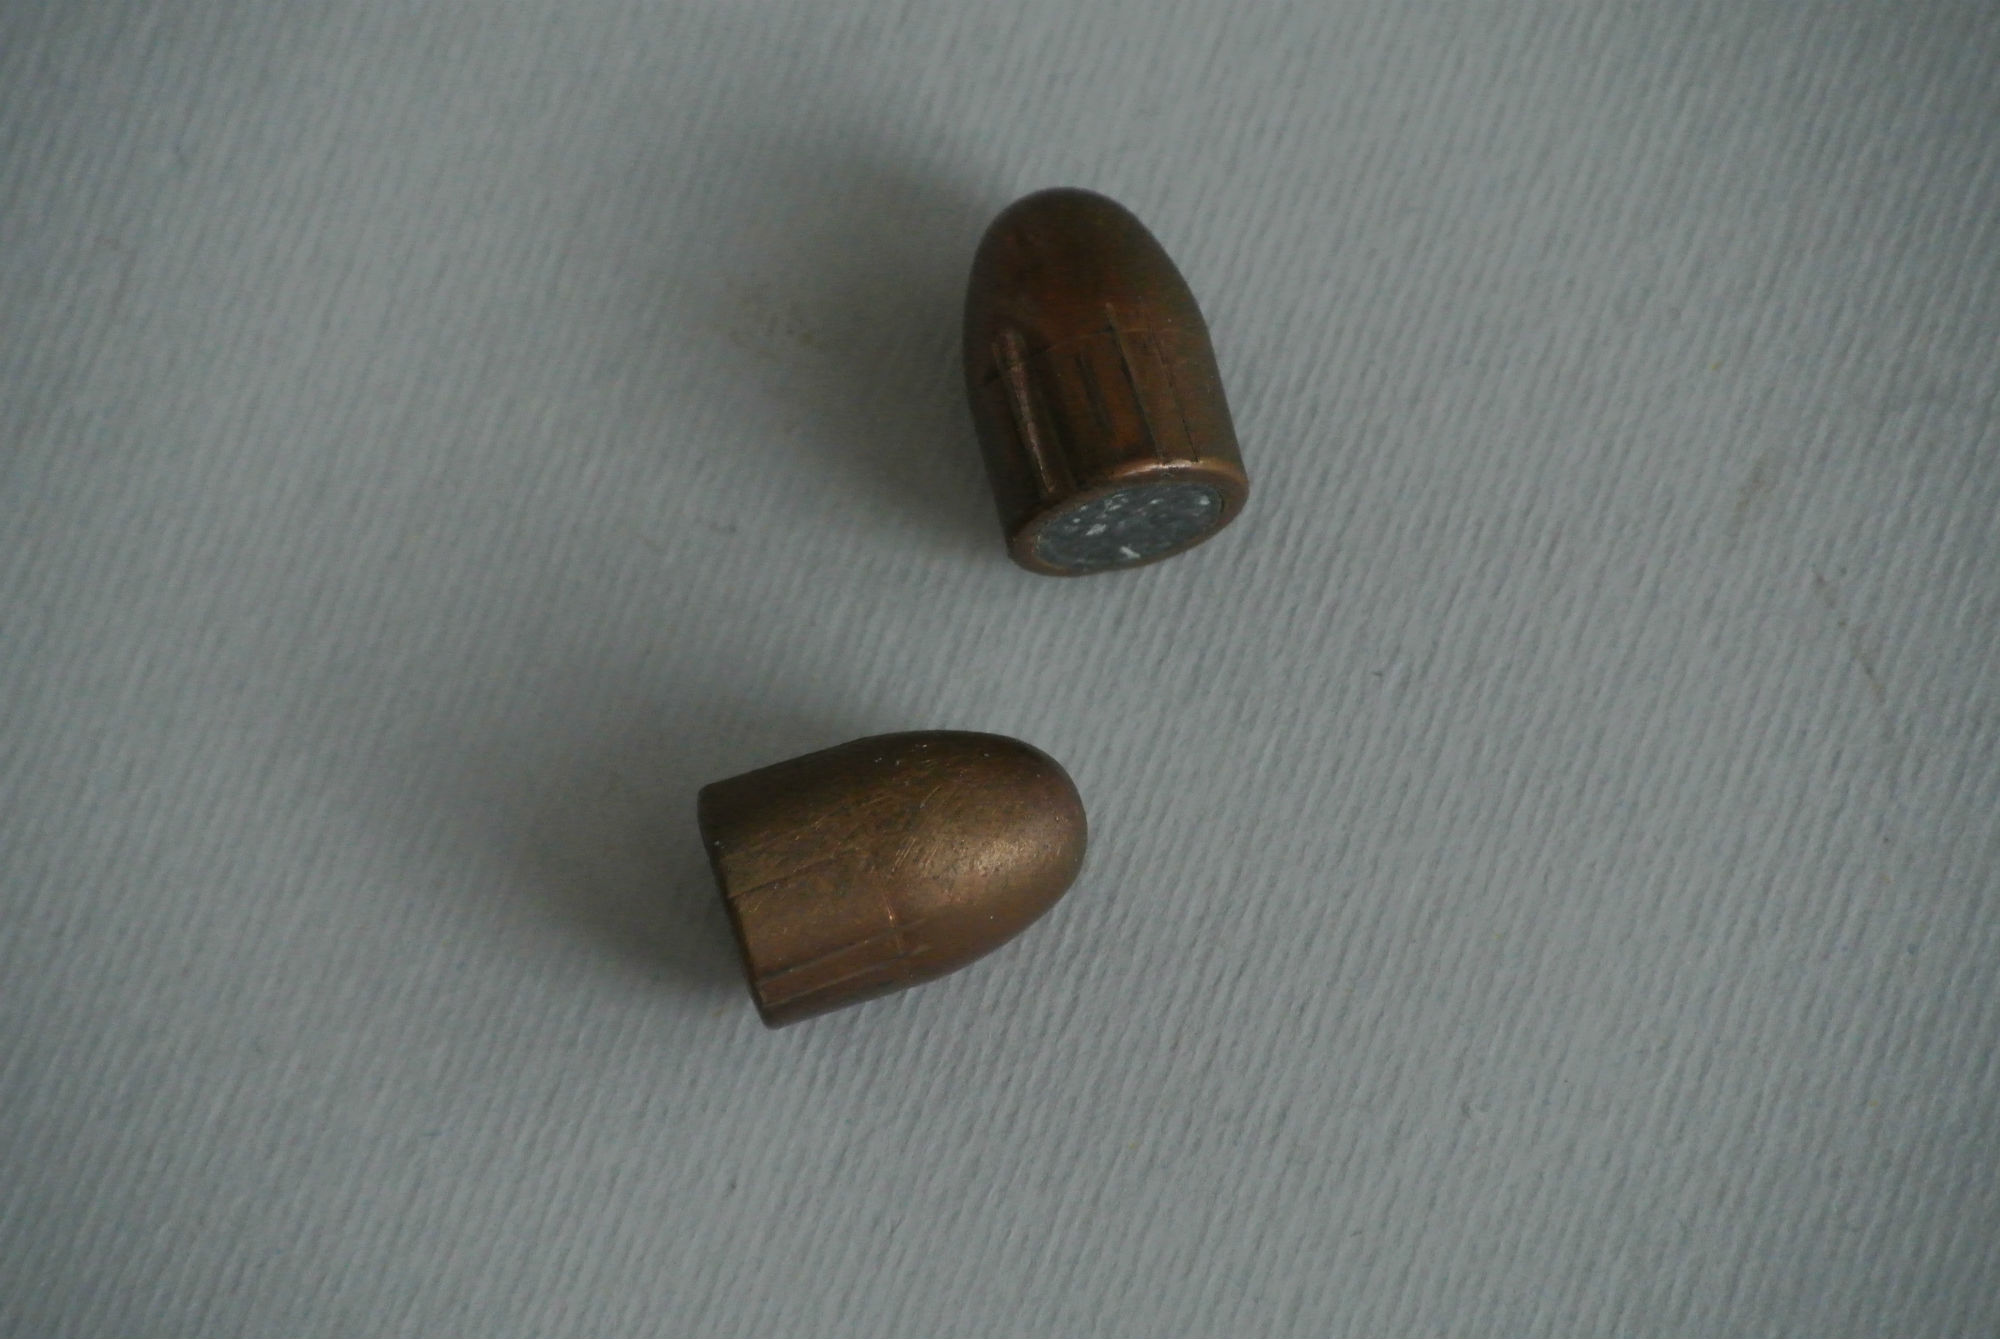 Two .45 ACP 226-grain lead round-nose bullets